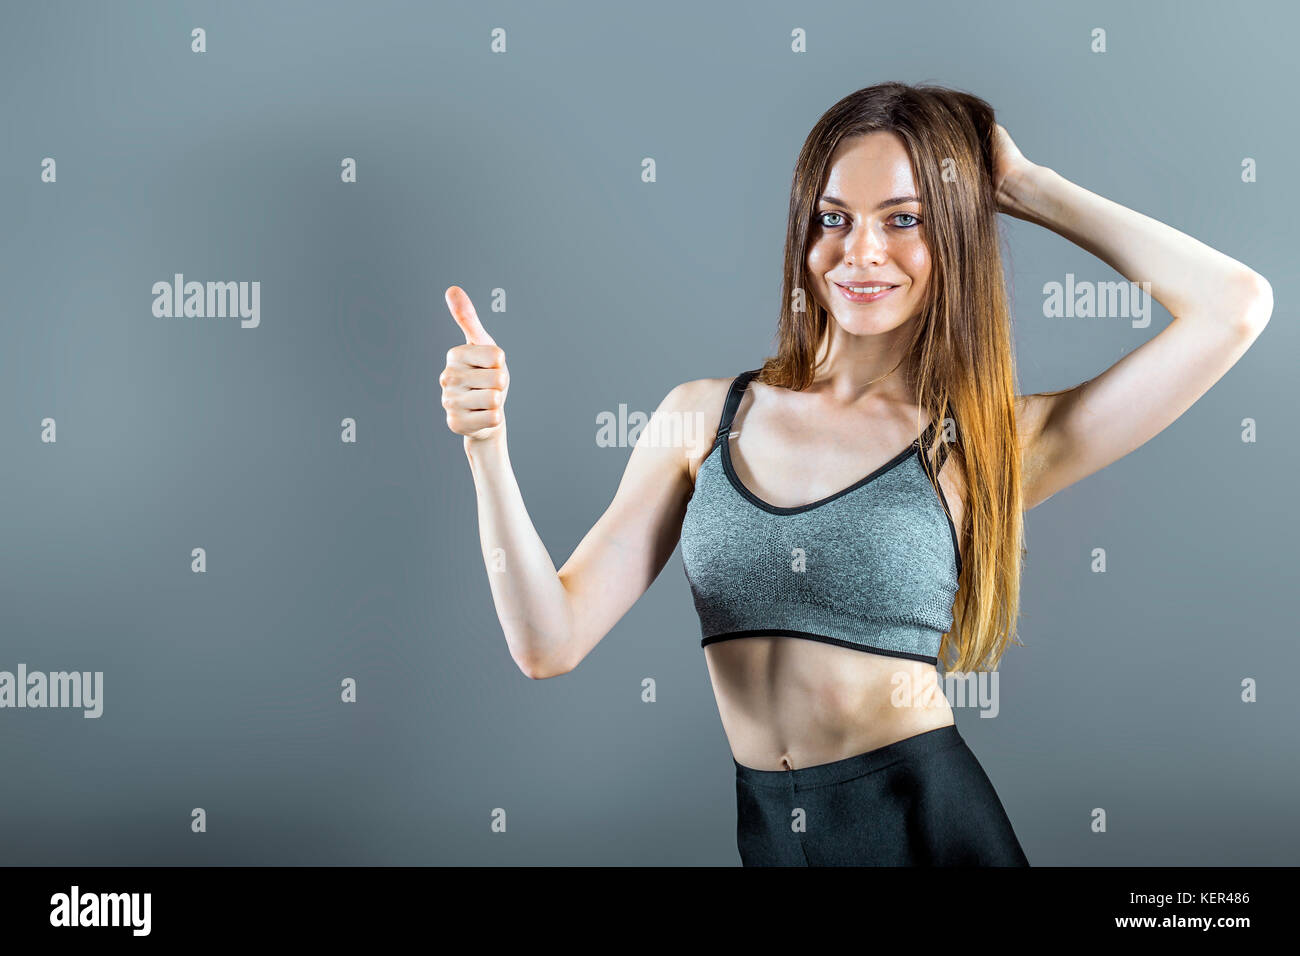 Portrait of Sportswoman with Thumb up Sign - Stock Image